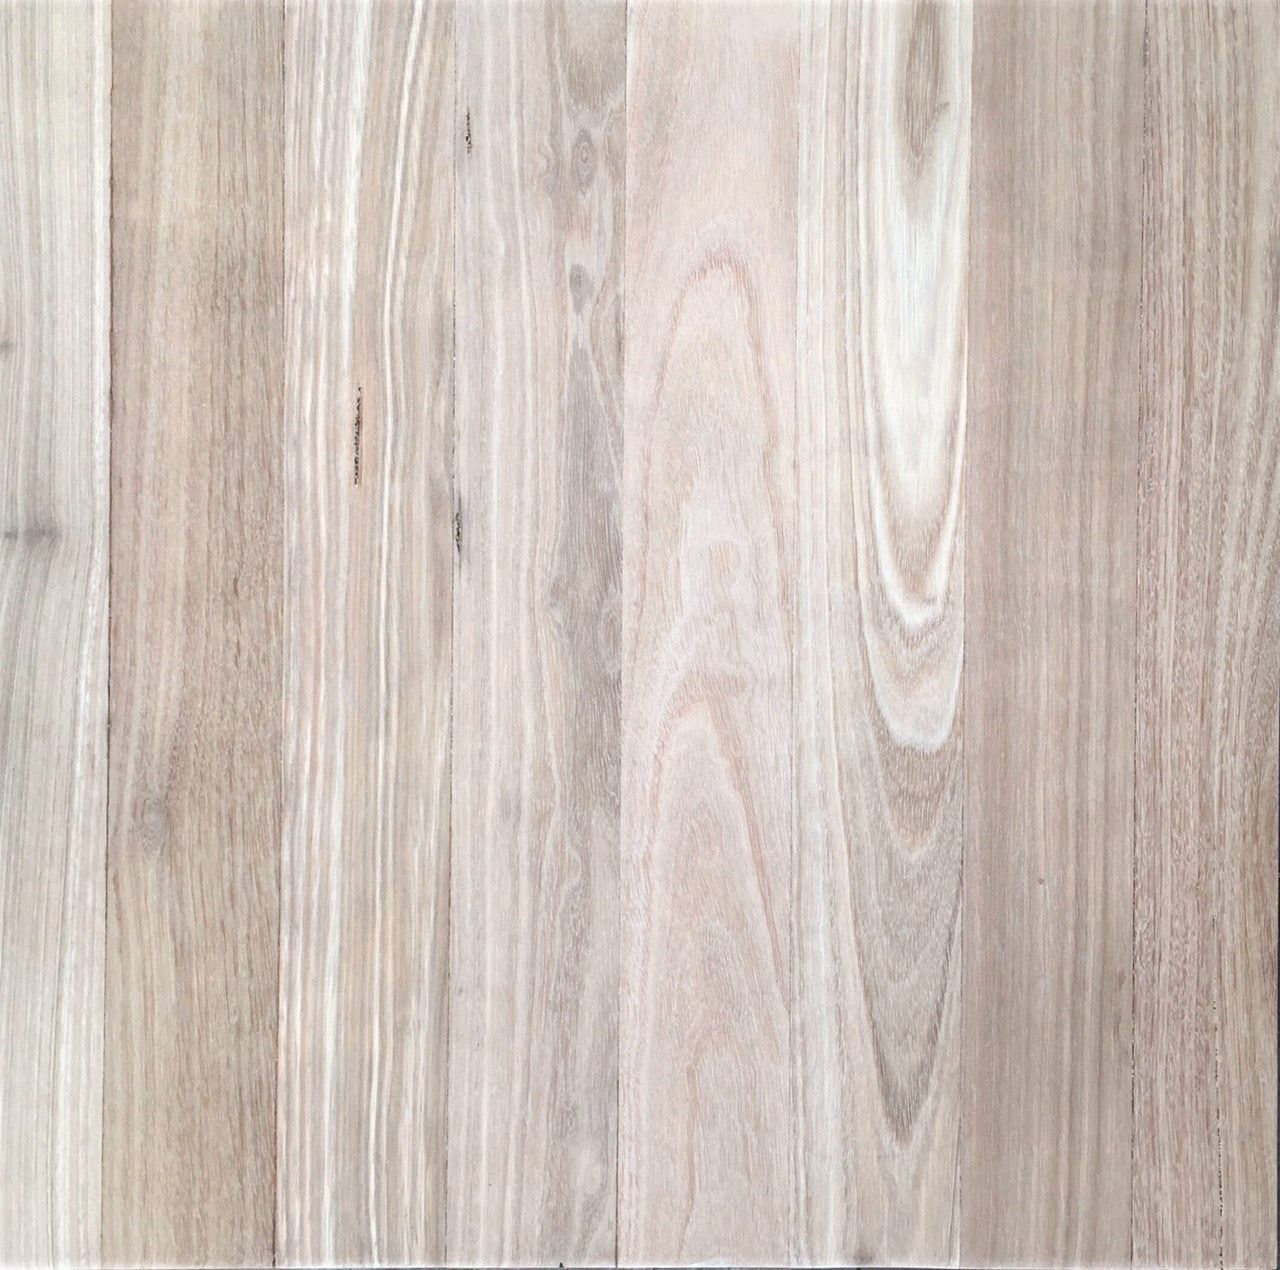 White Wash Pickling Stain On Pine: Delightful Thing #PineAntiqueHearflooringt